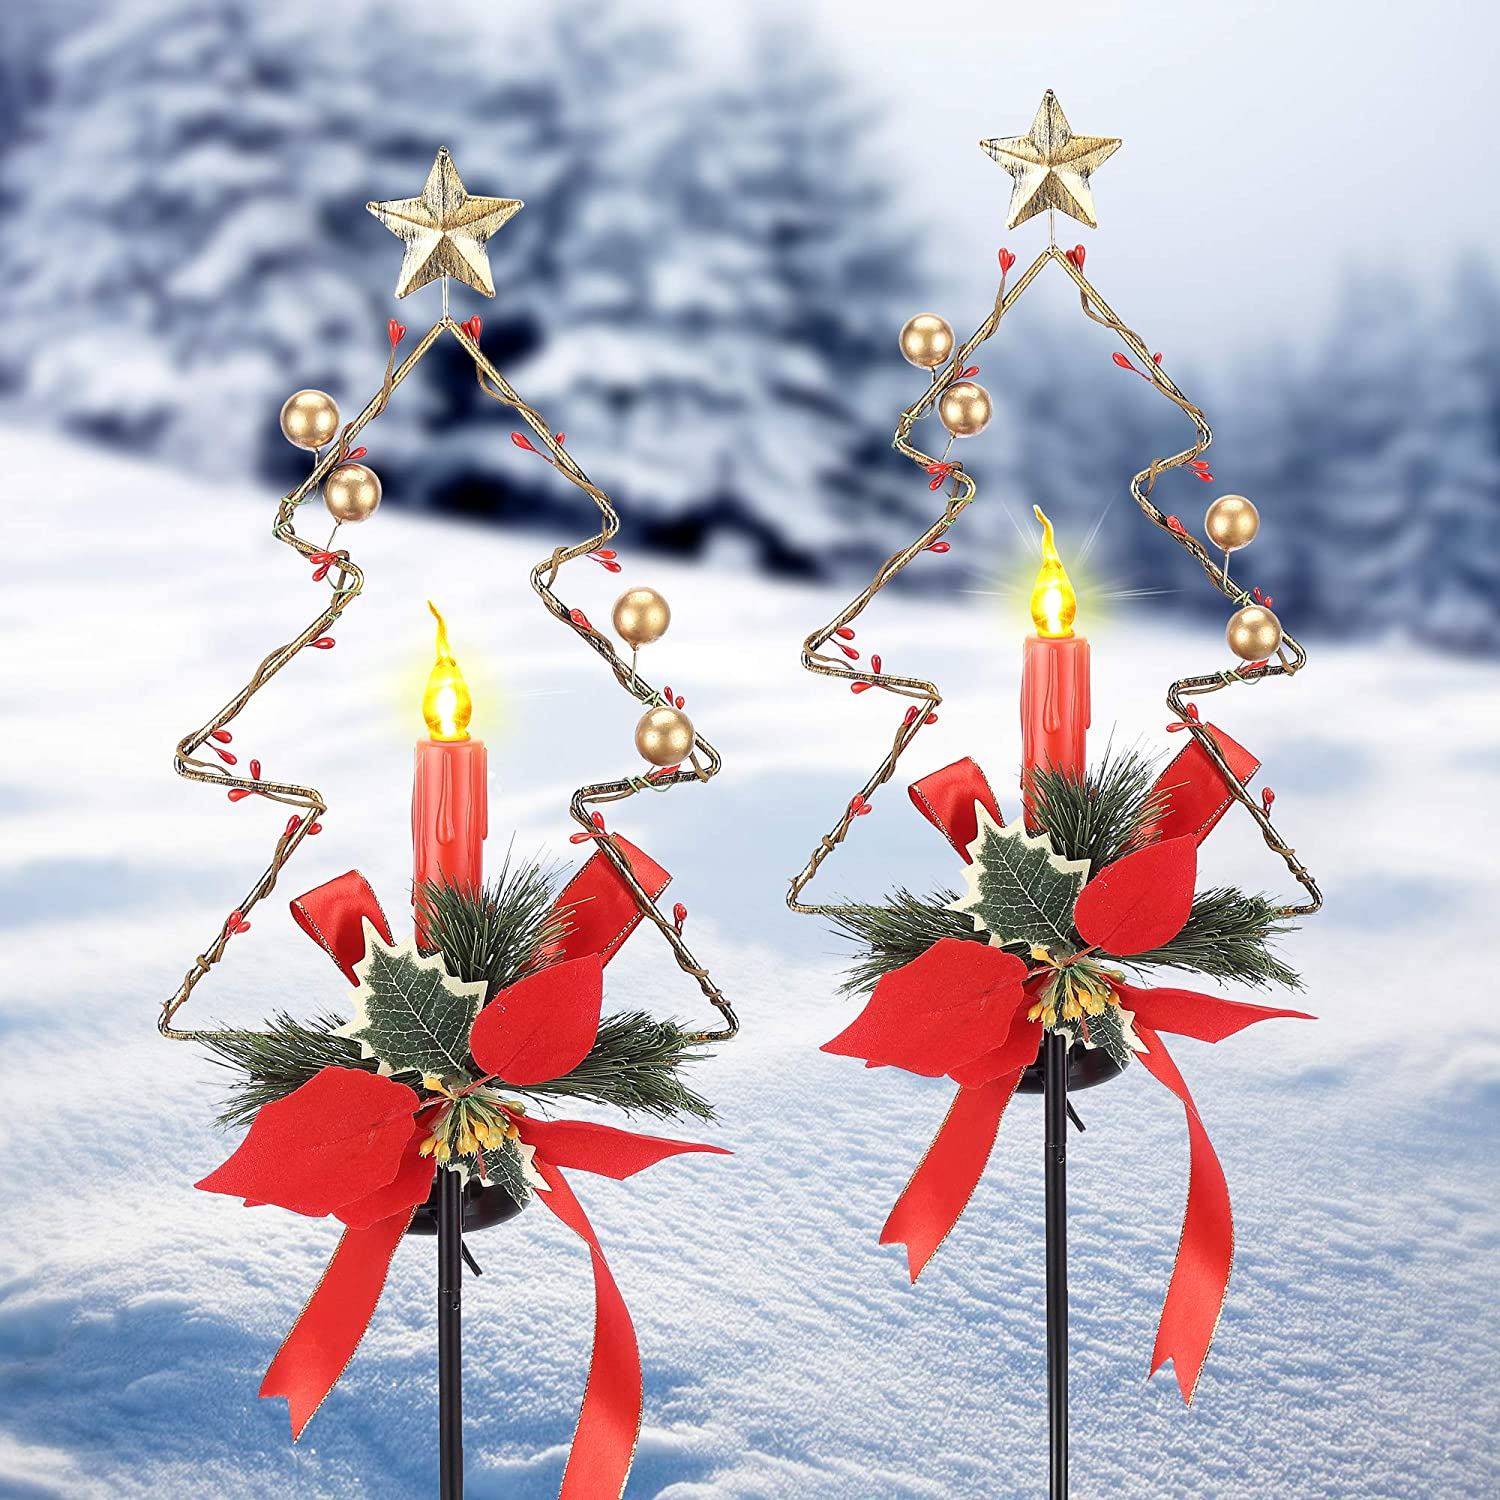 Litake [2Pack] Solar Powered Christmas Decorations Outdoor Pathway Lights, Waterproof LED Candle Xmas Garden Stakes Ground Lights, Sidewalk Landscape Lights Lawn Yard Holiday Ornament